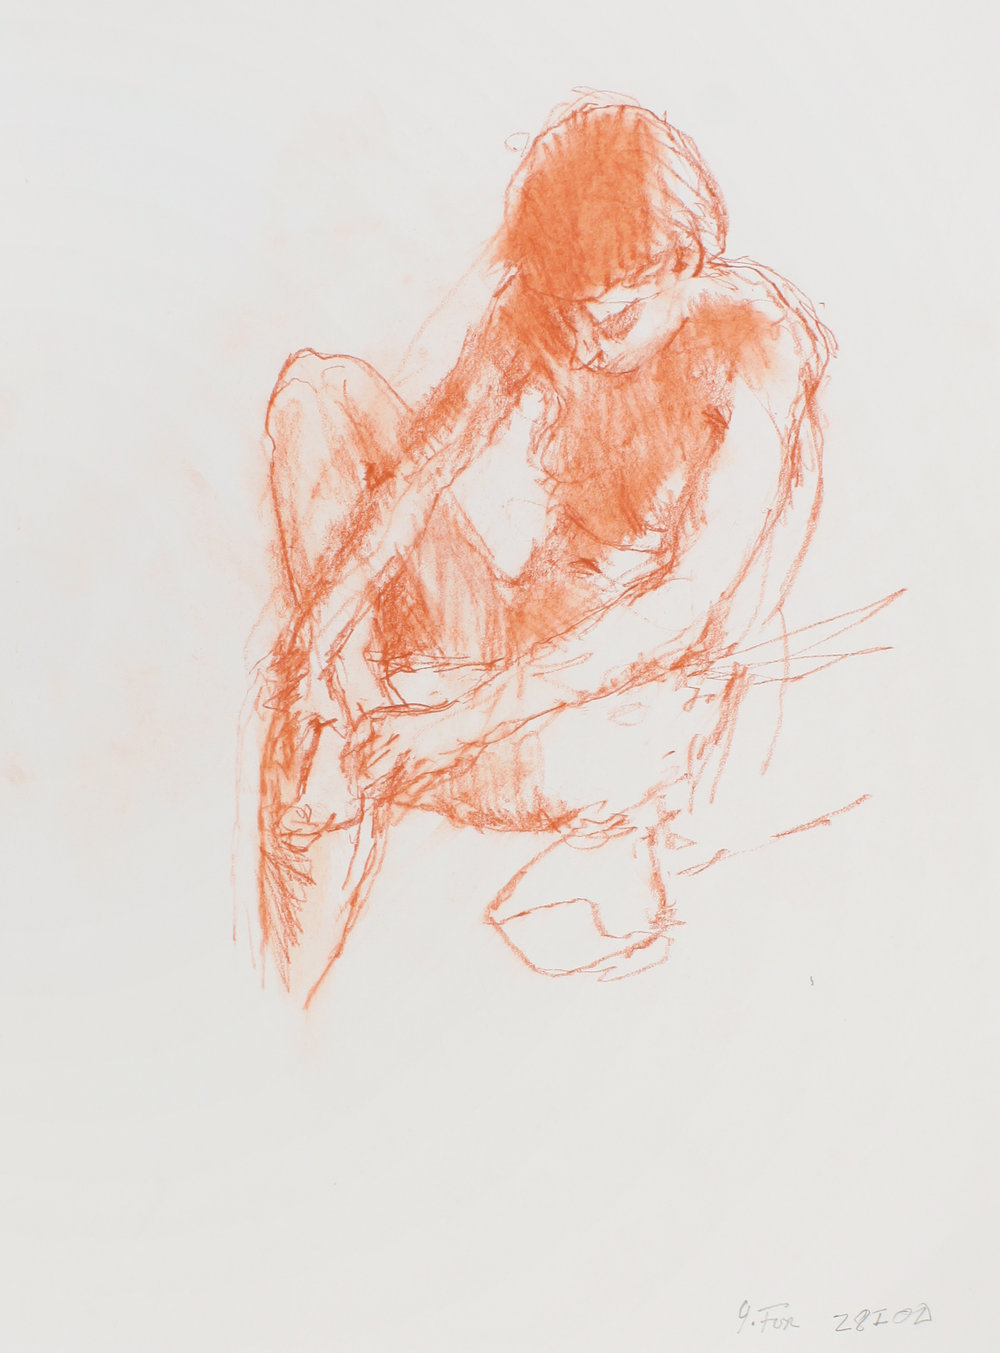 2000_Nude_Holding_Foot_red_conte_on_paper_15x11in_WPF560.jpg